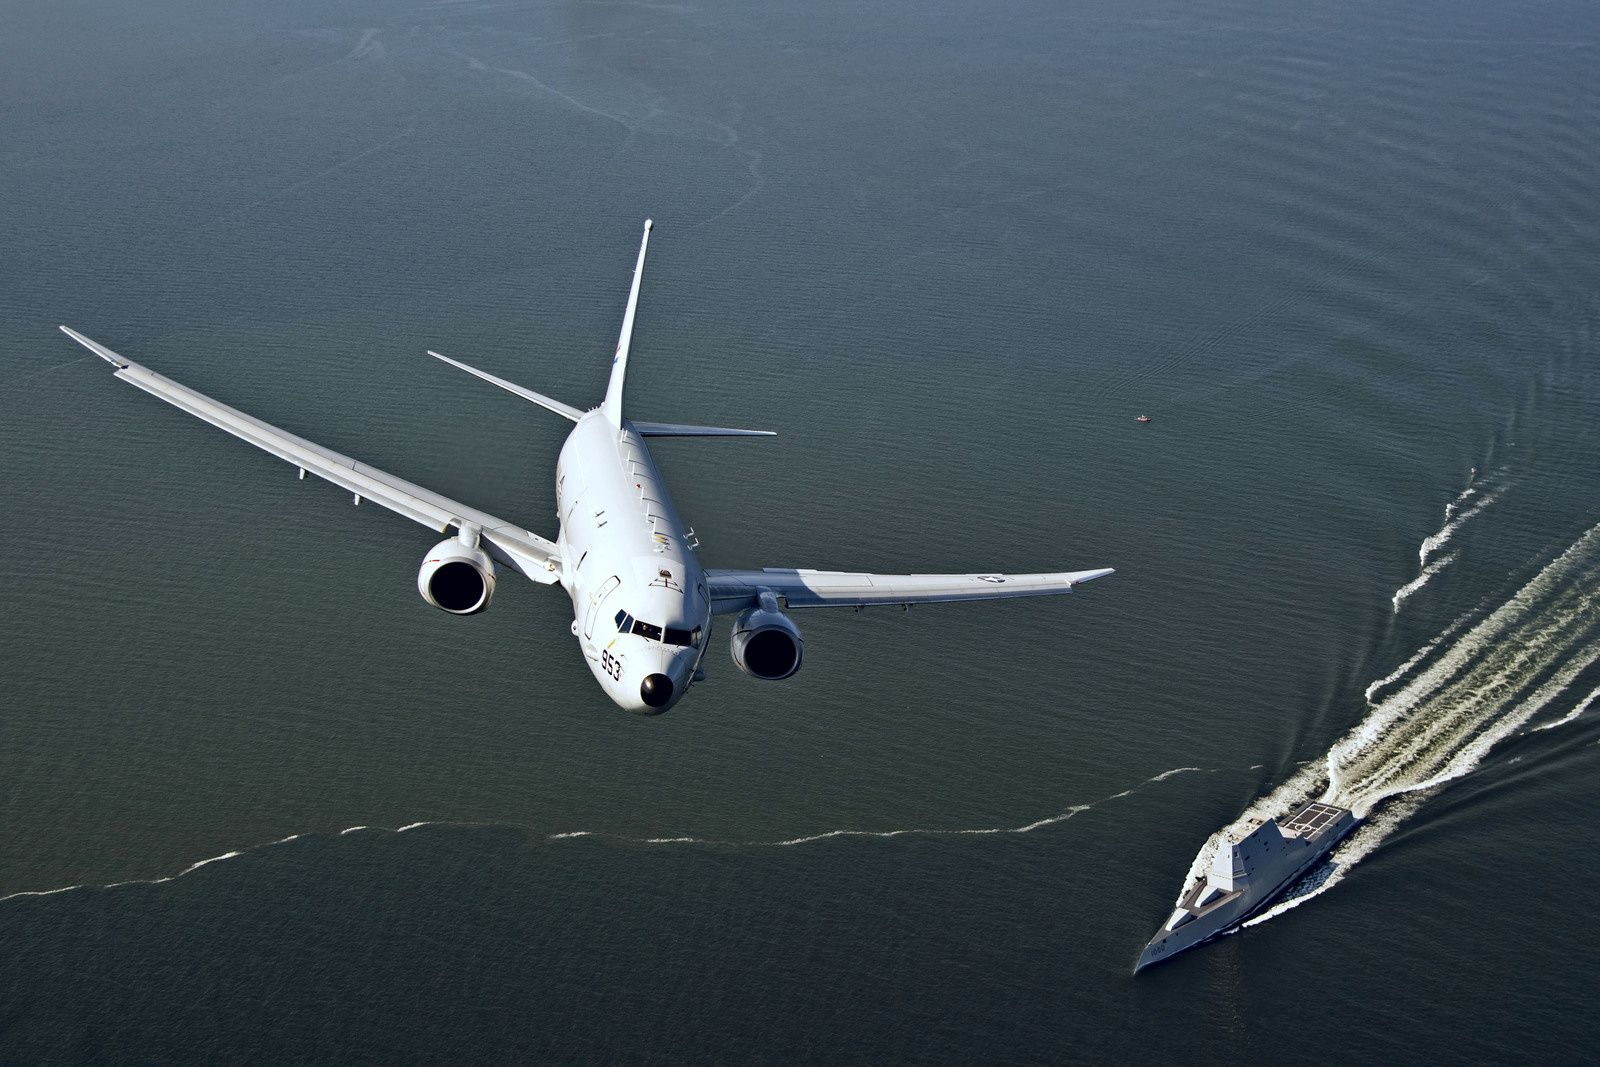 © US Navy - Un P-8A Poseidon de l'Air Test and Evaluation Squadron vole au-dessus de l'USS Zumwalt.